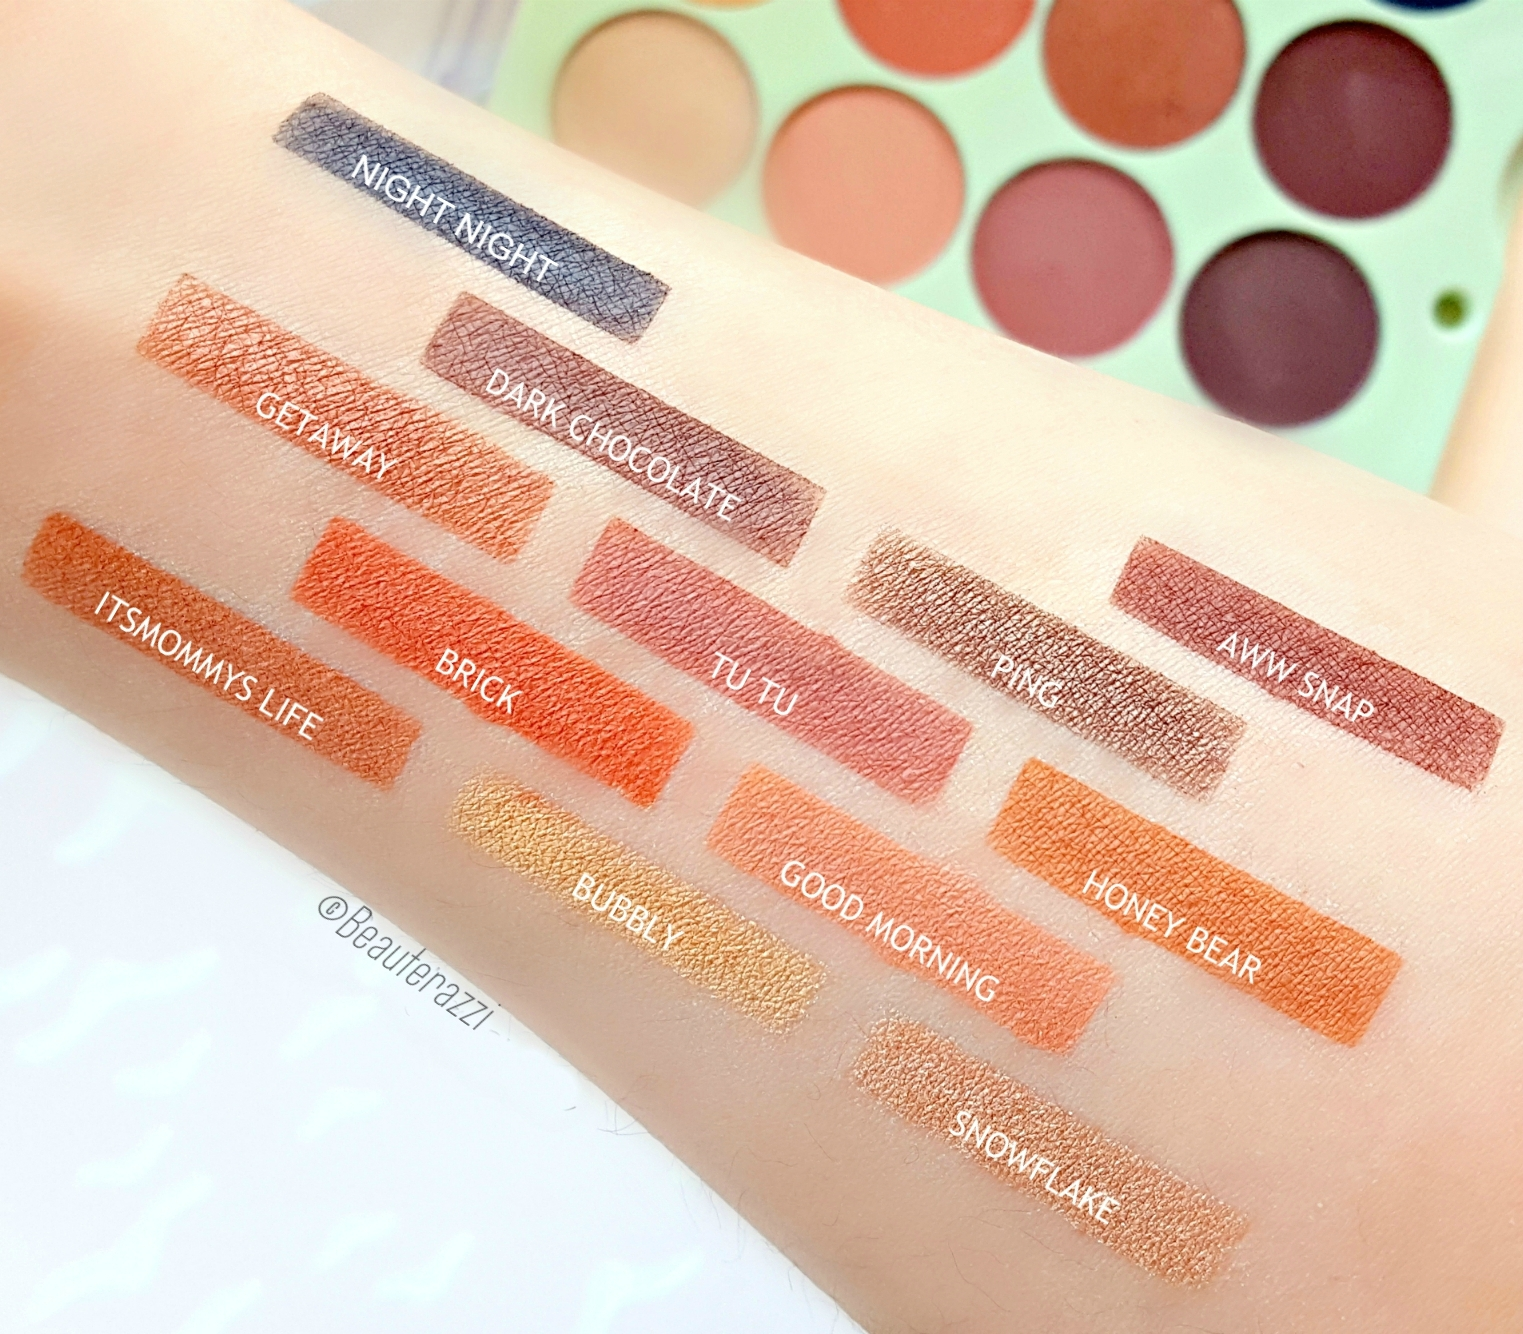 Pixi + Its Judy Time Its Eye Time Eyeshadow Palette - Swatches